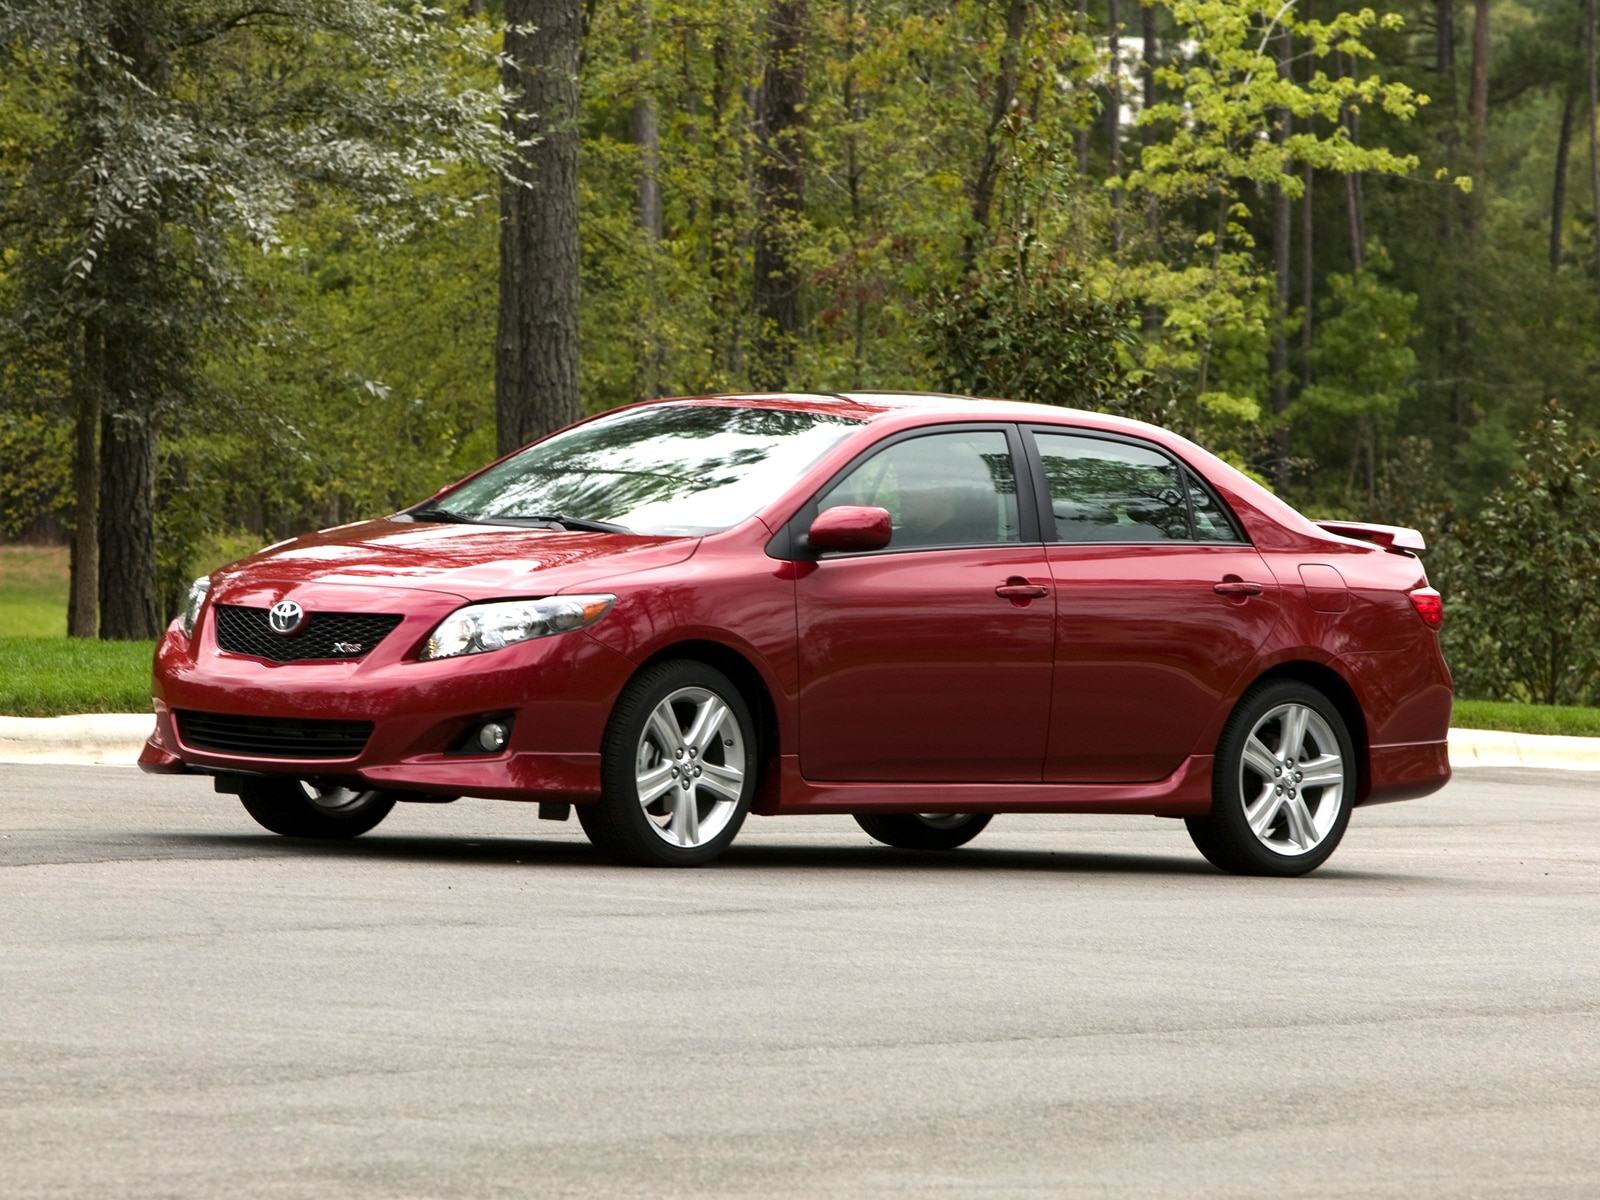 2009 toyota corolla xrs toyota sport sedan review. Black Bedroom Furniture Sets. Home Design Ideas